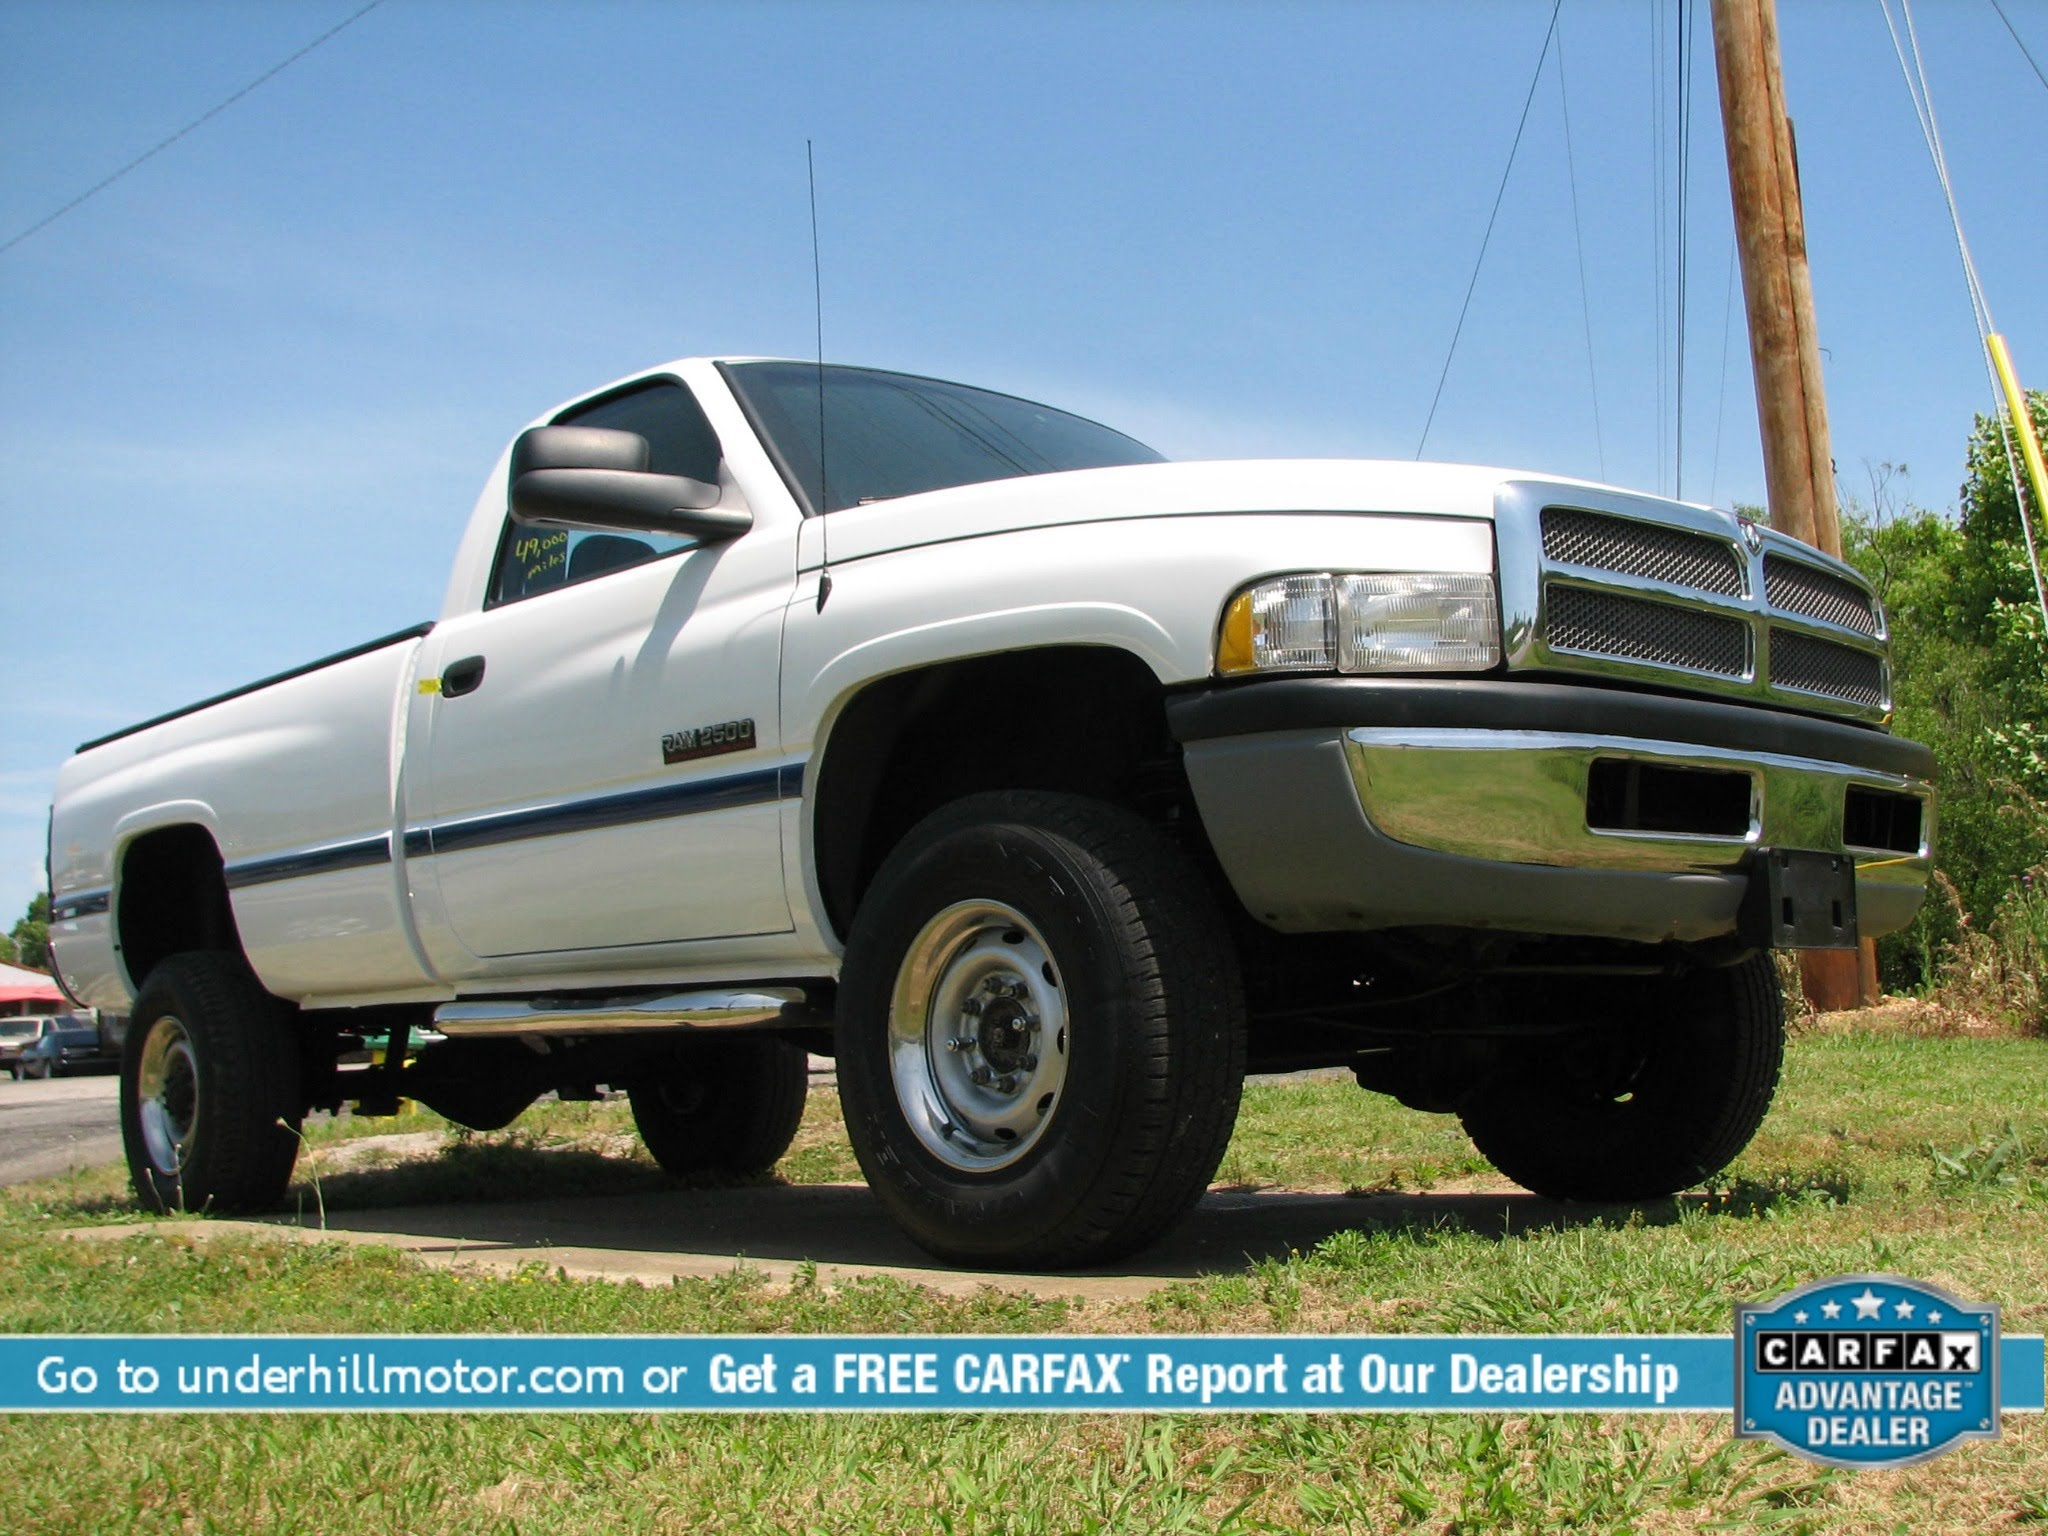 2001 dodge ram 2500 used cars dickson tennessee carfax one owner